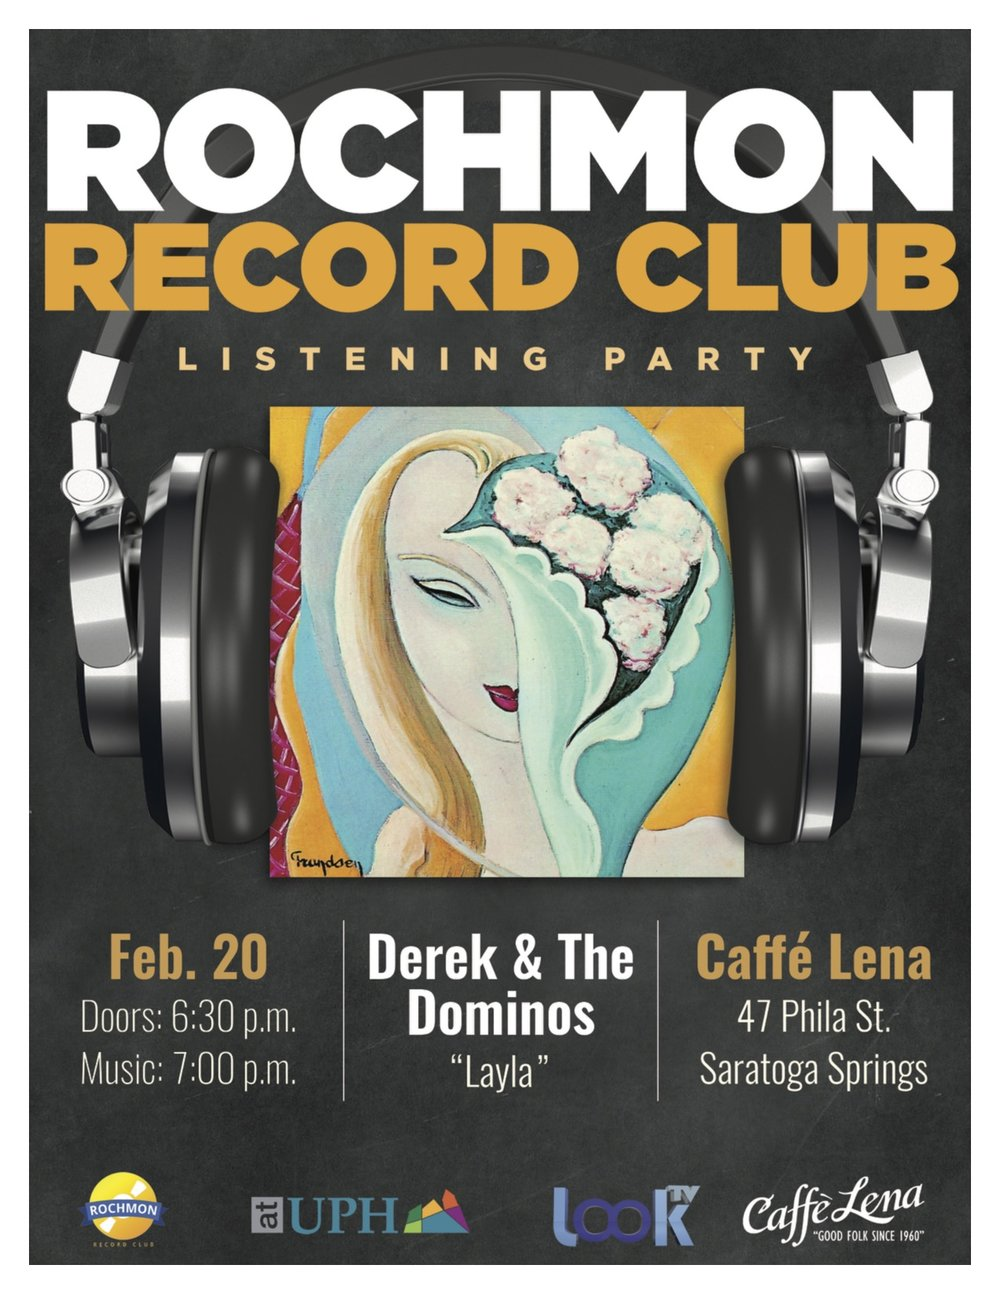 RochmonRecordClub_8.5x11_Feb2018.jpg